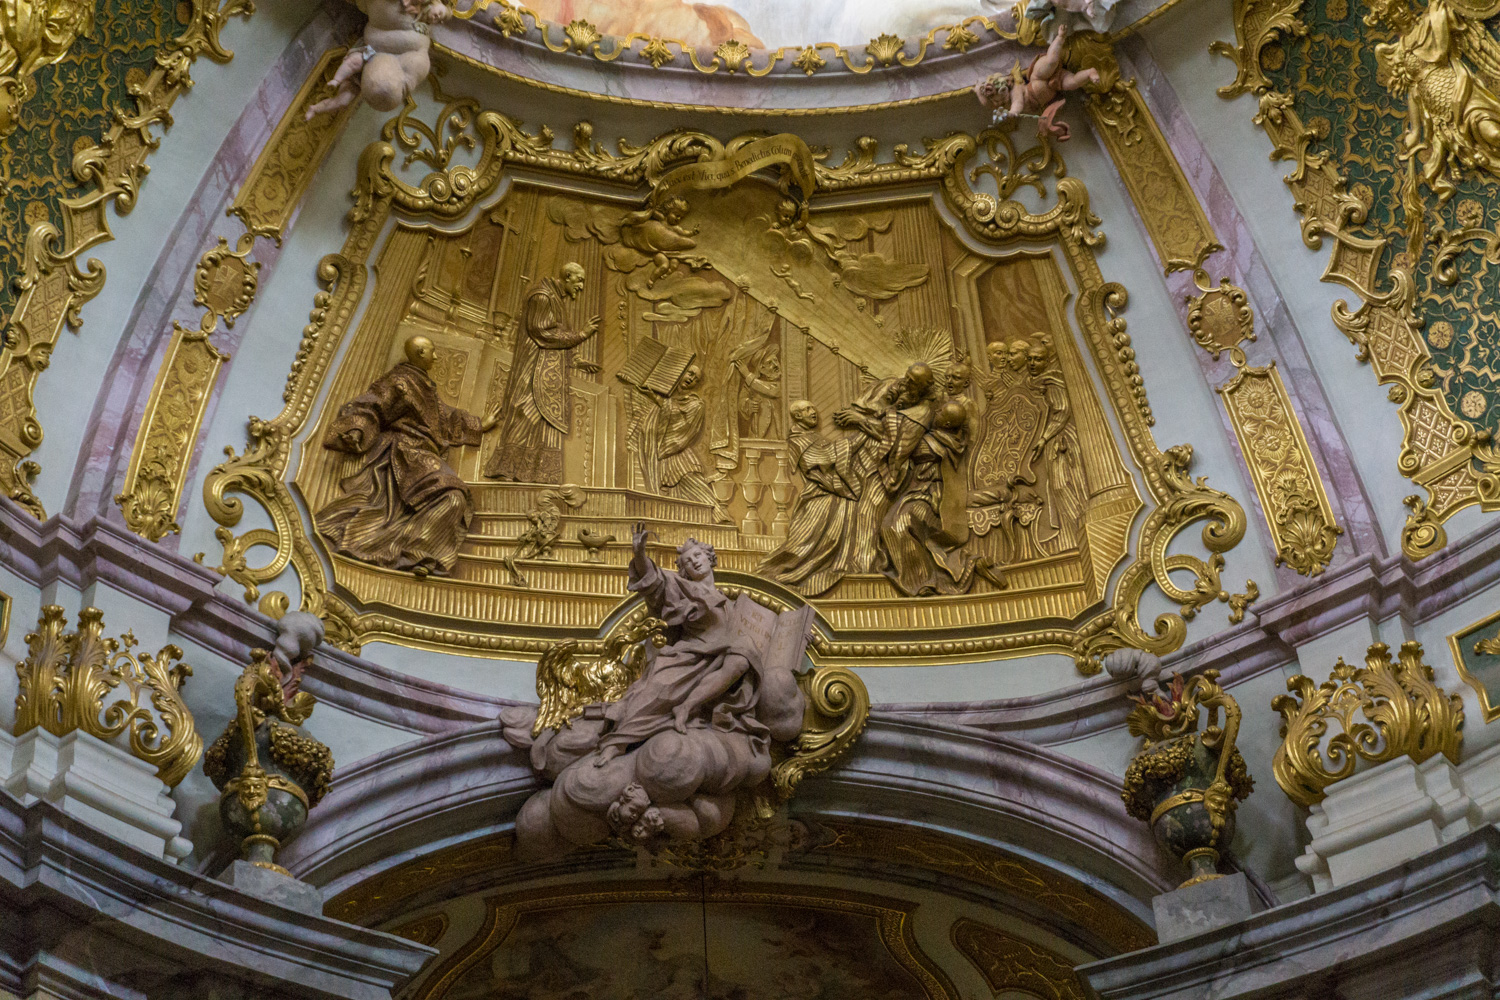 gold relief image above the altar